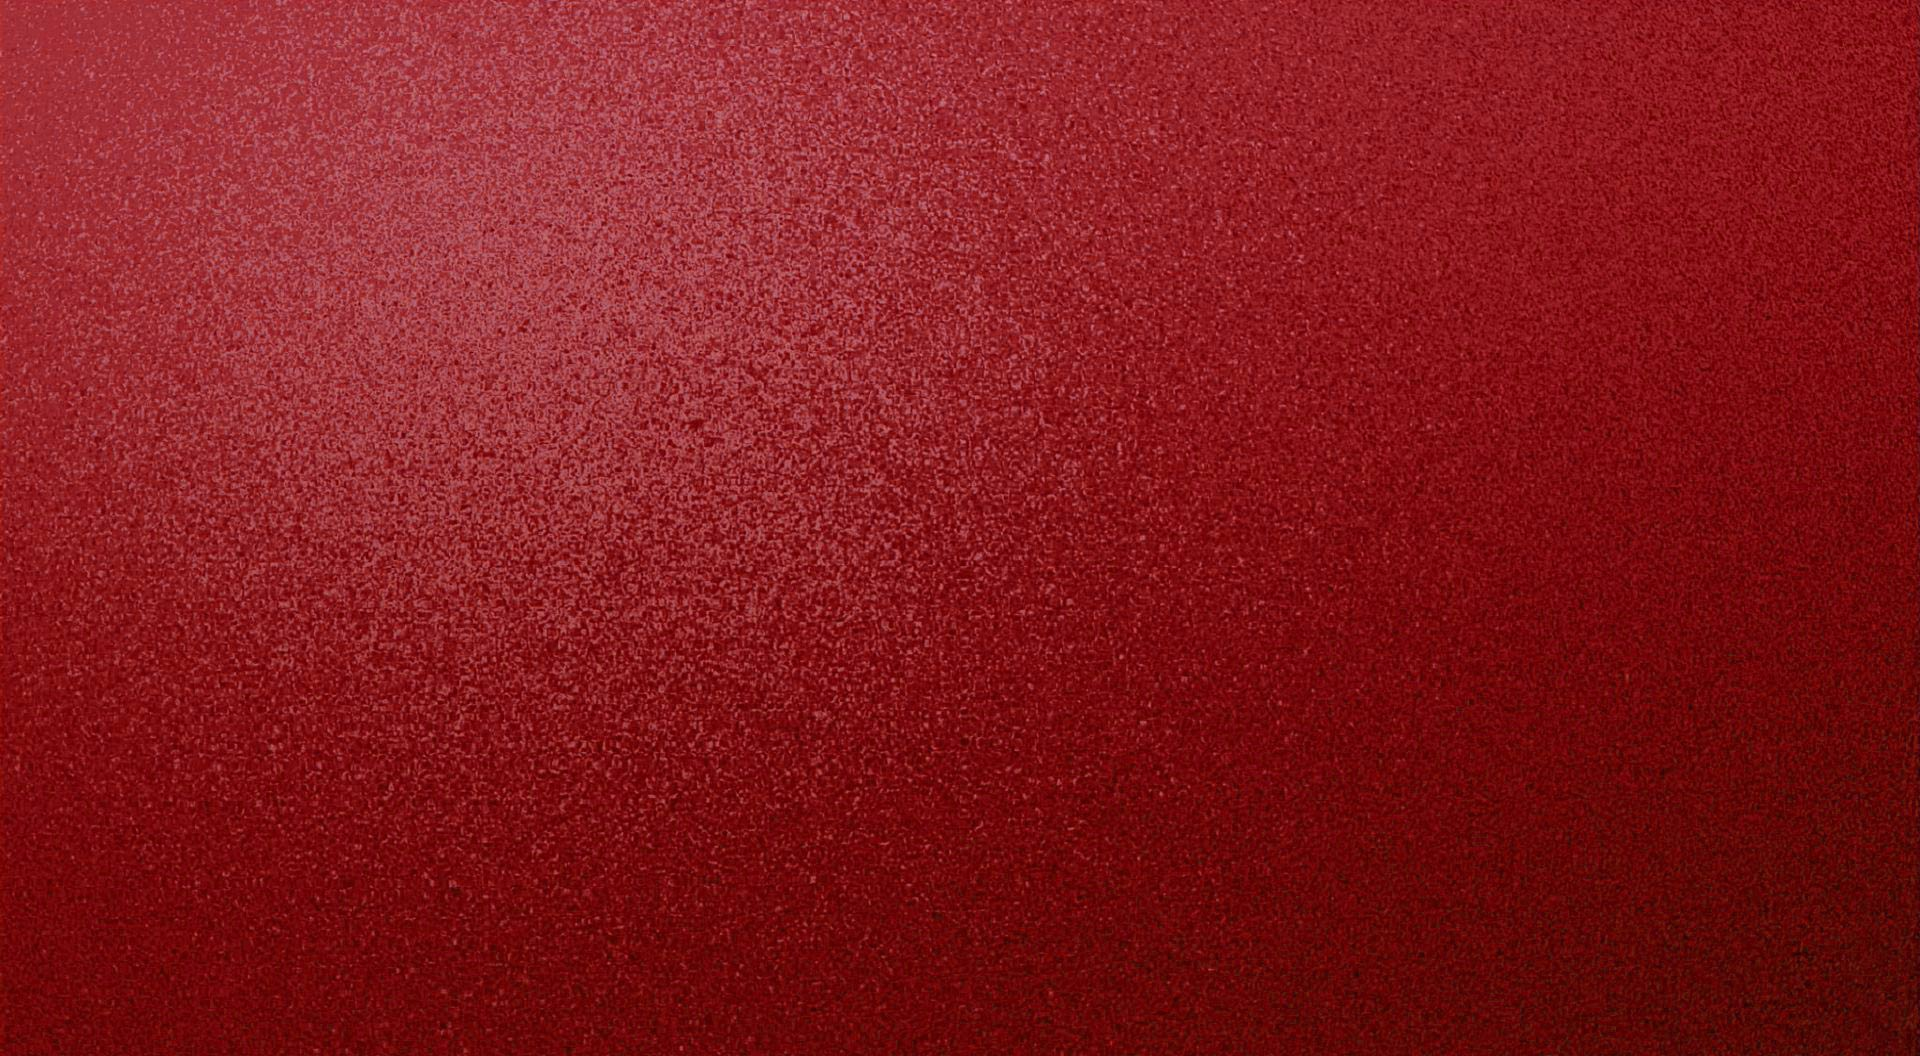 Red Textured Background Desktop Wallpaper